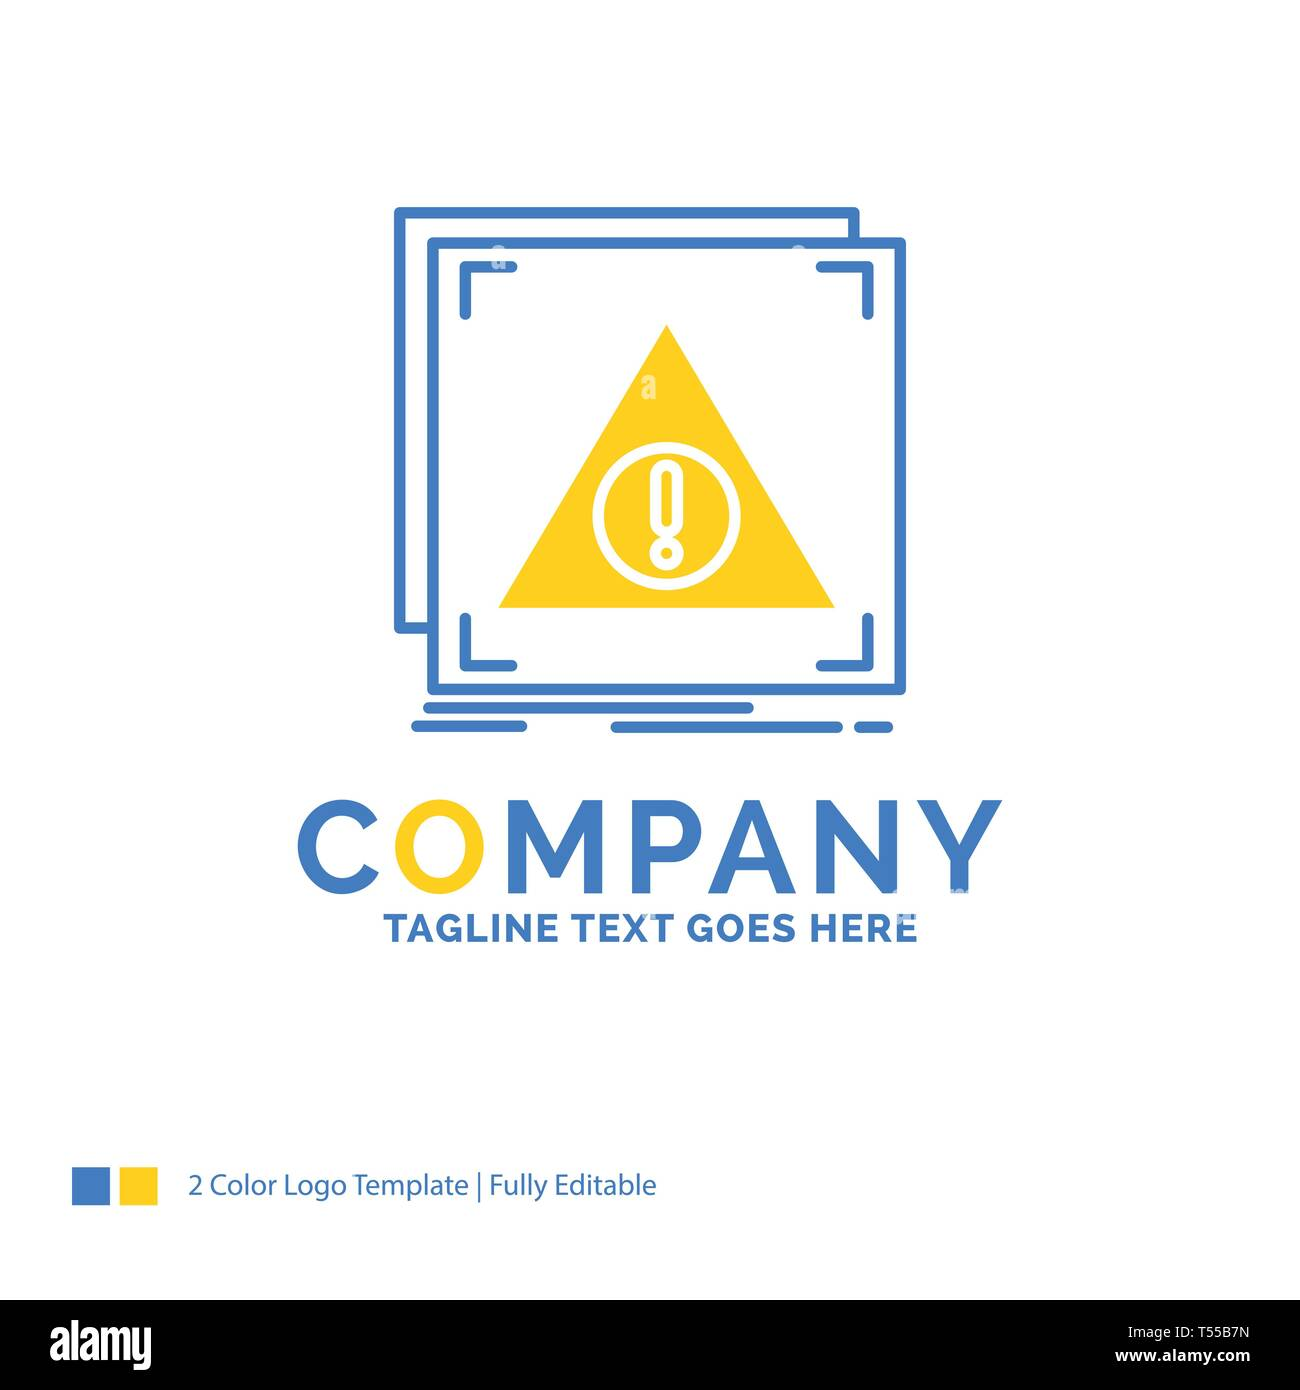 Error, Application, Denied, server, alert Blue Yellow Business Logo template. Creative Design Template Place for Tagline. - Stock Image